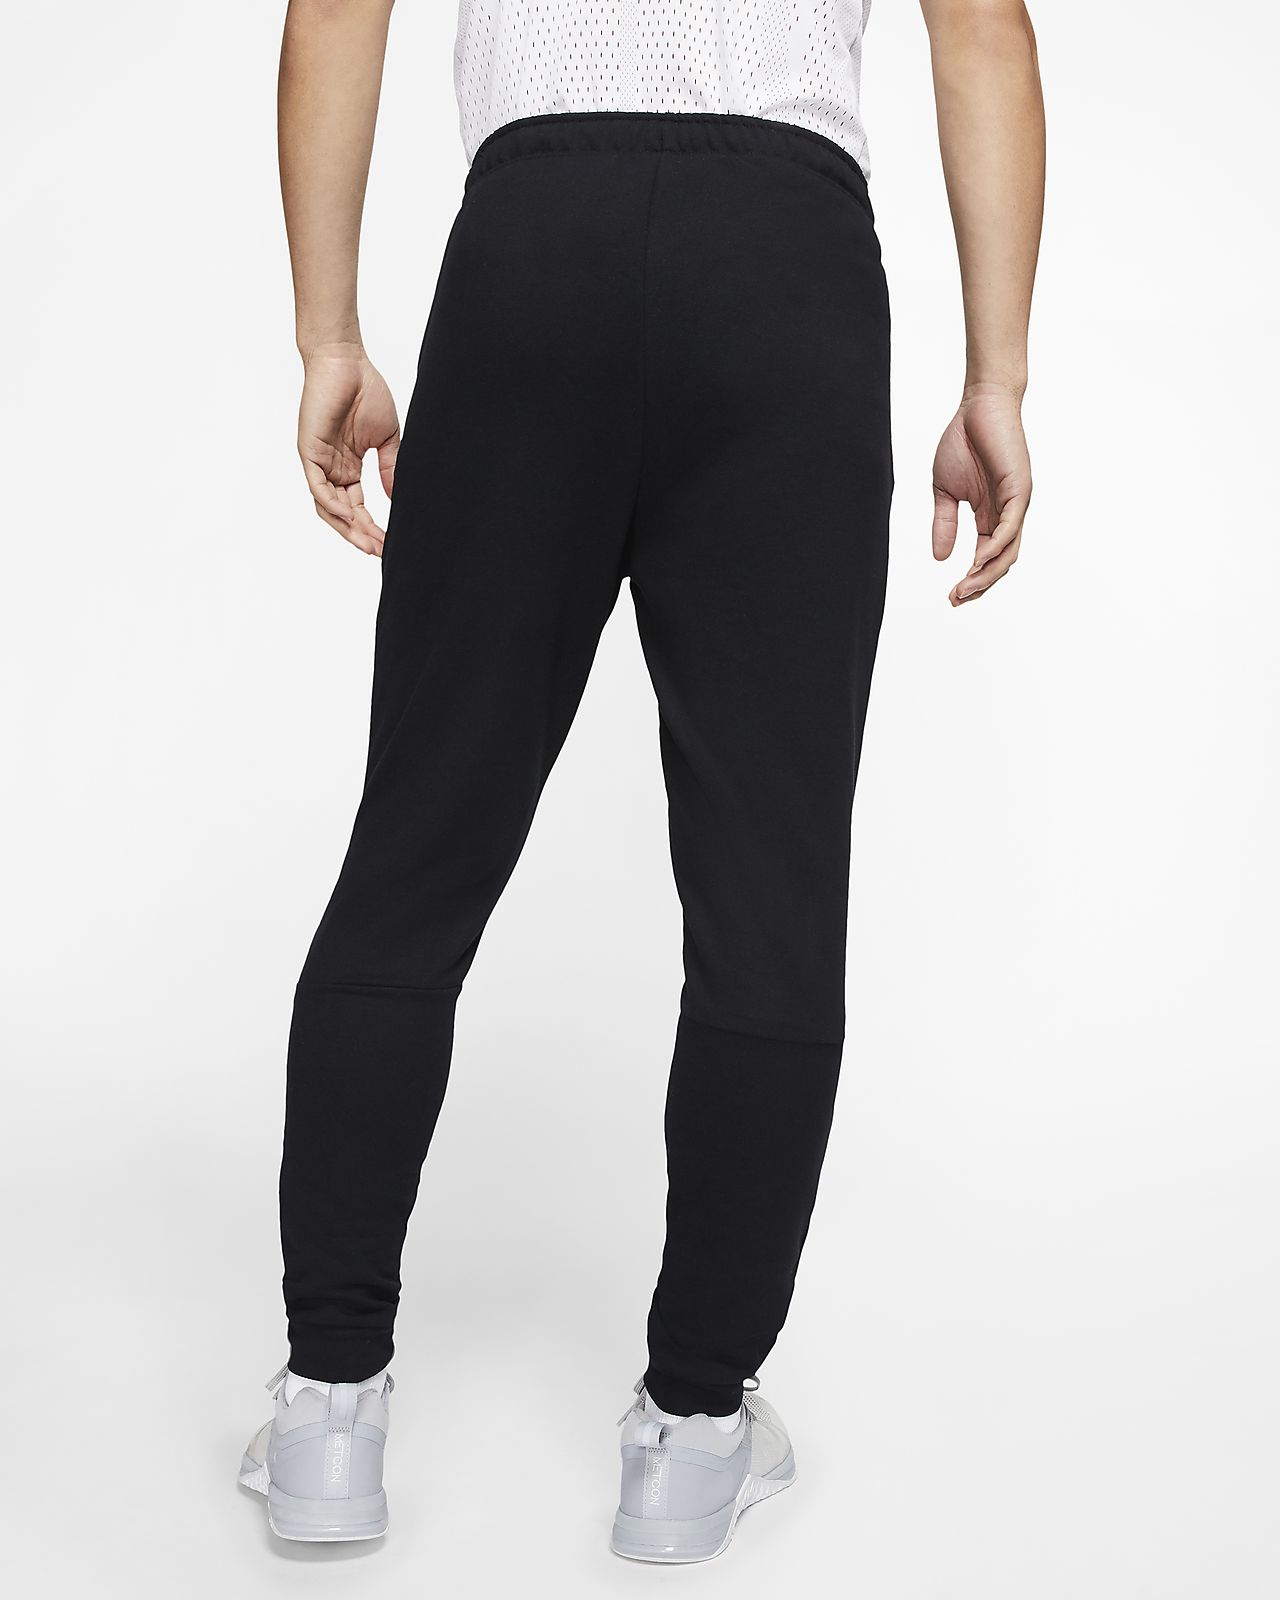 Nike Dri FIT Men's Fleece Training Trousers